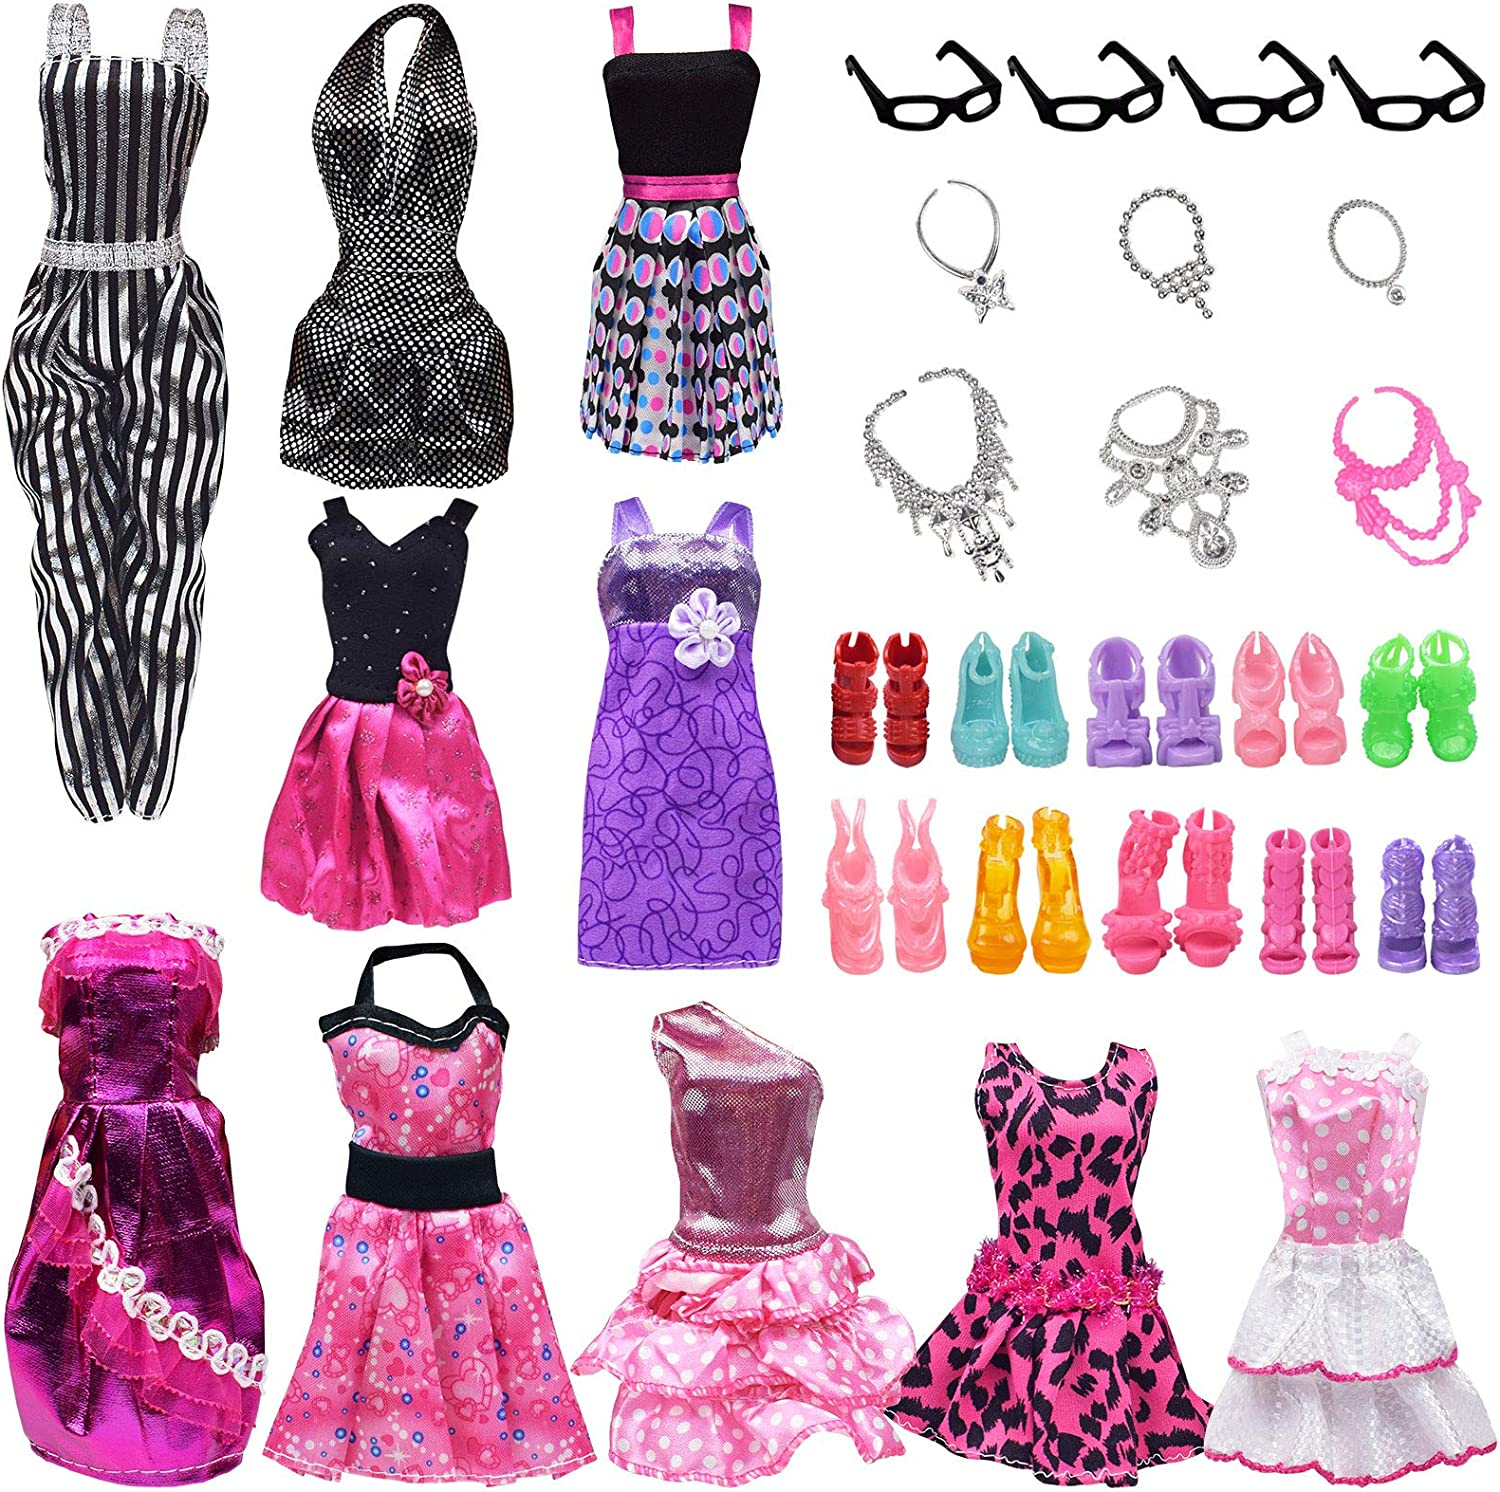 zheyistep 30 Pcs Fashion Casual Handmade Doll Clothes Sets and Accessories for 11.5 Inch Dolls Includes 10 Doll Clothes Dress+4 Glasses+6 Plastic Necklaces+10 Pairs Shoes